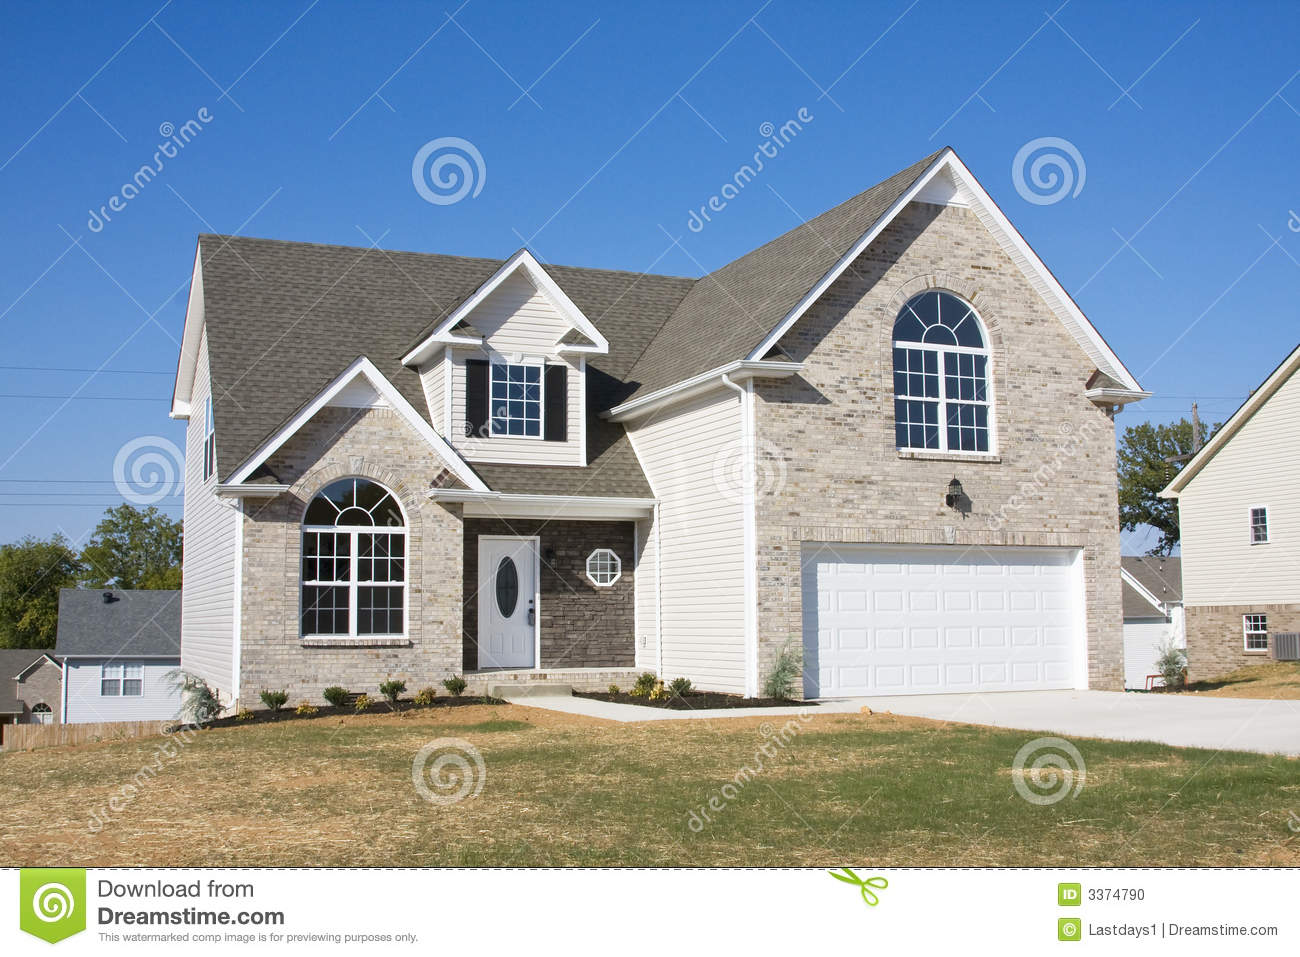 New homes for sale stock photo image 3374790 for New homes for sale